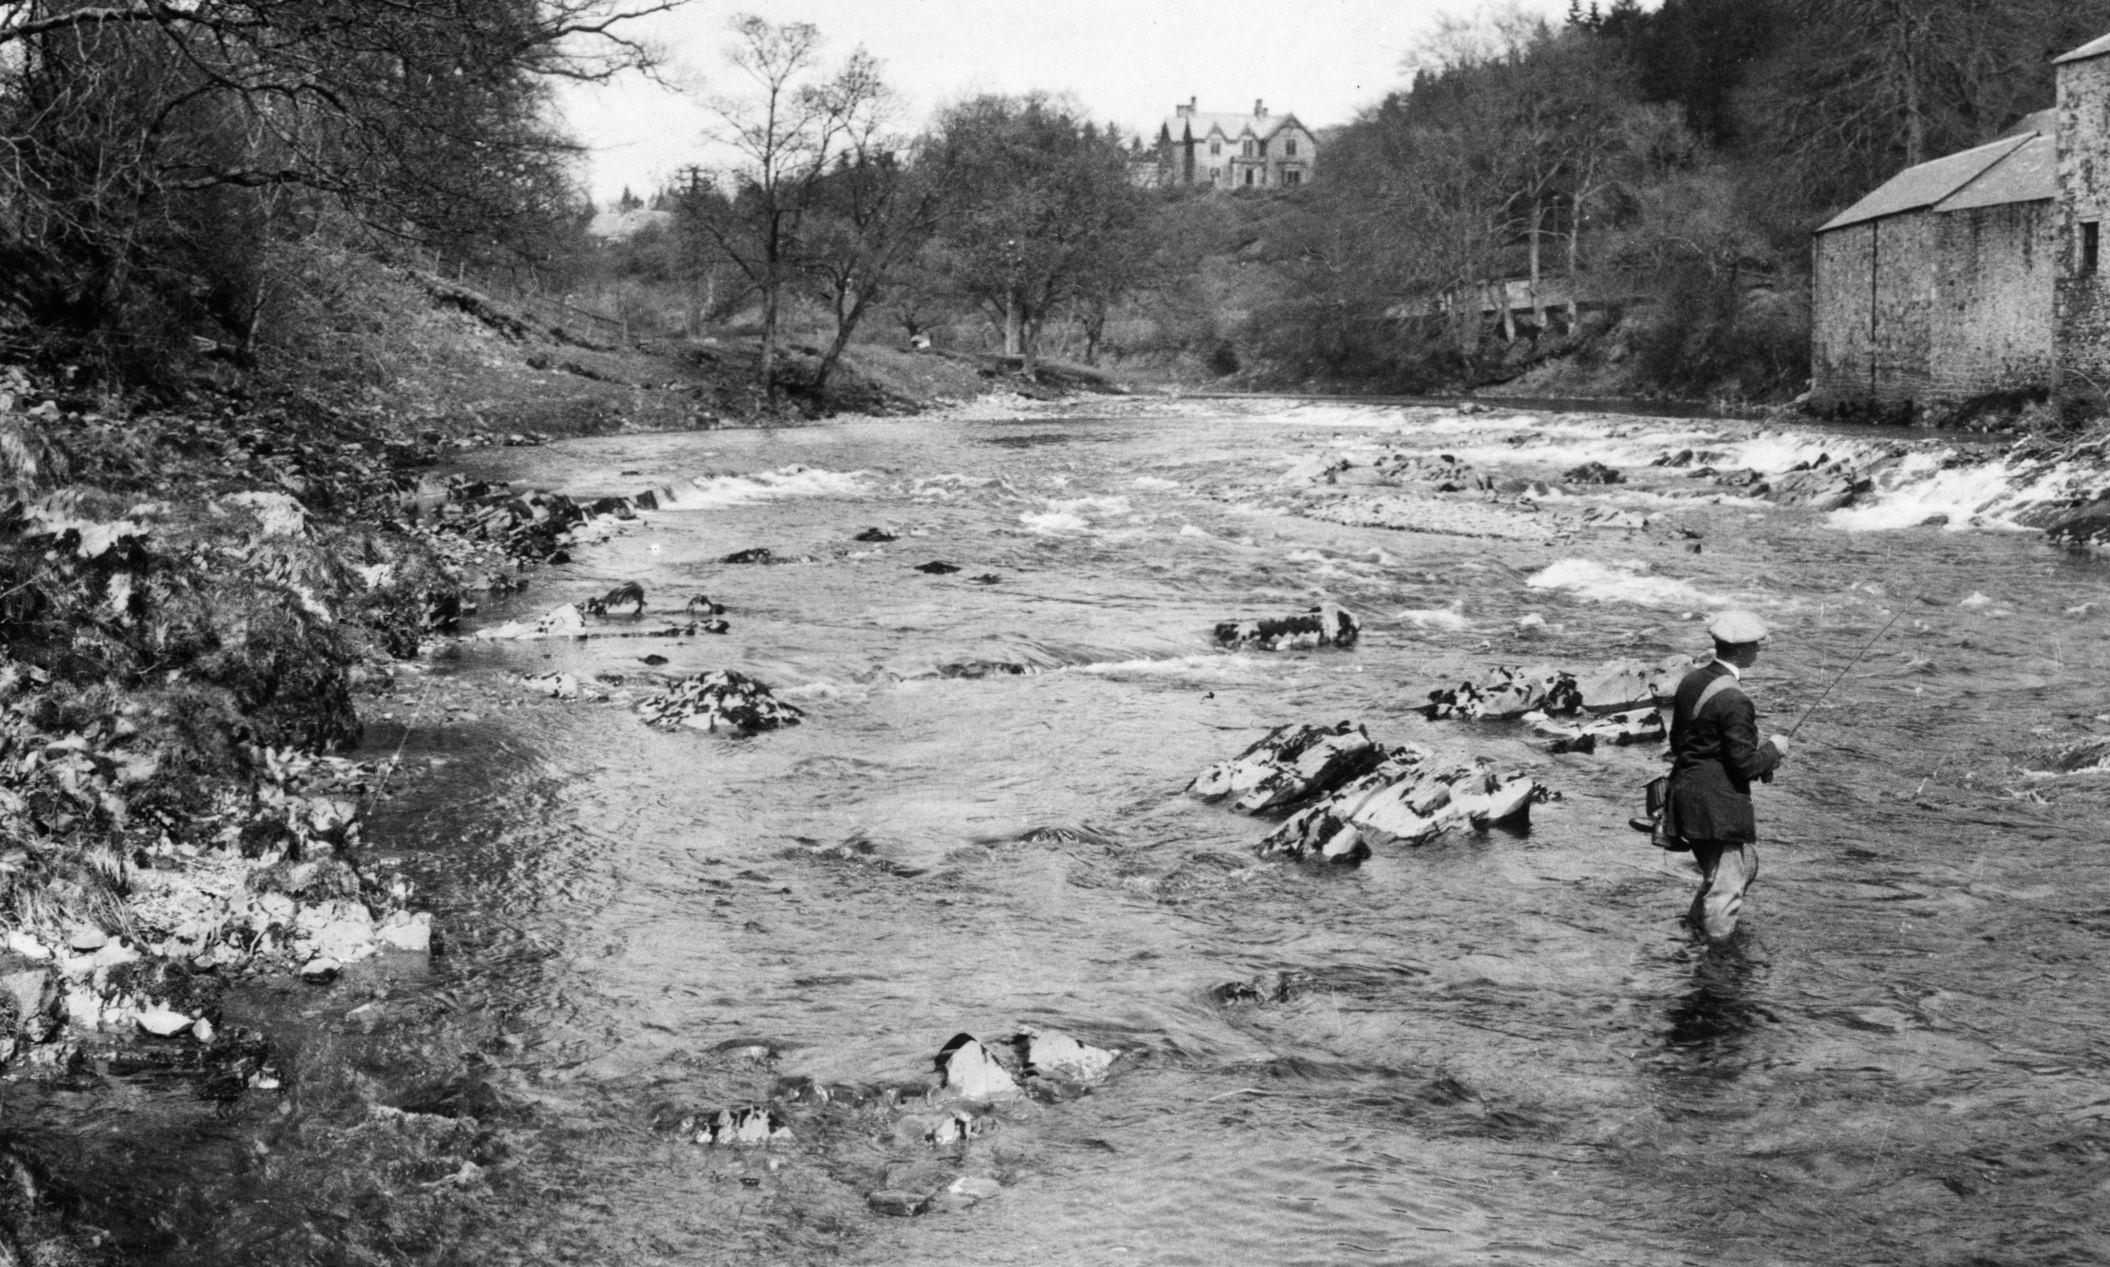 Shetland wages war on trout poachers – archive, 17 September 1957